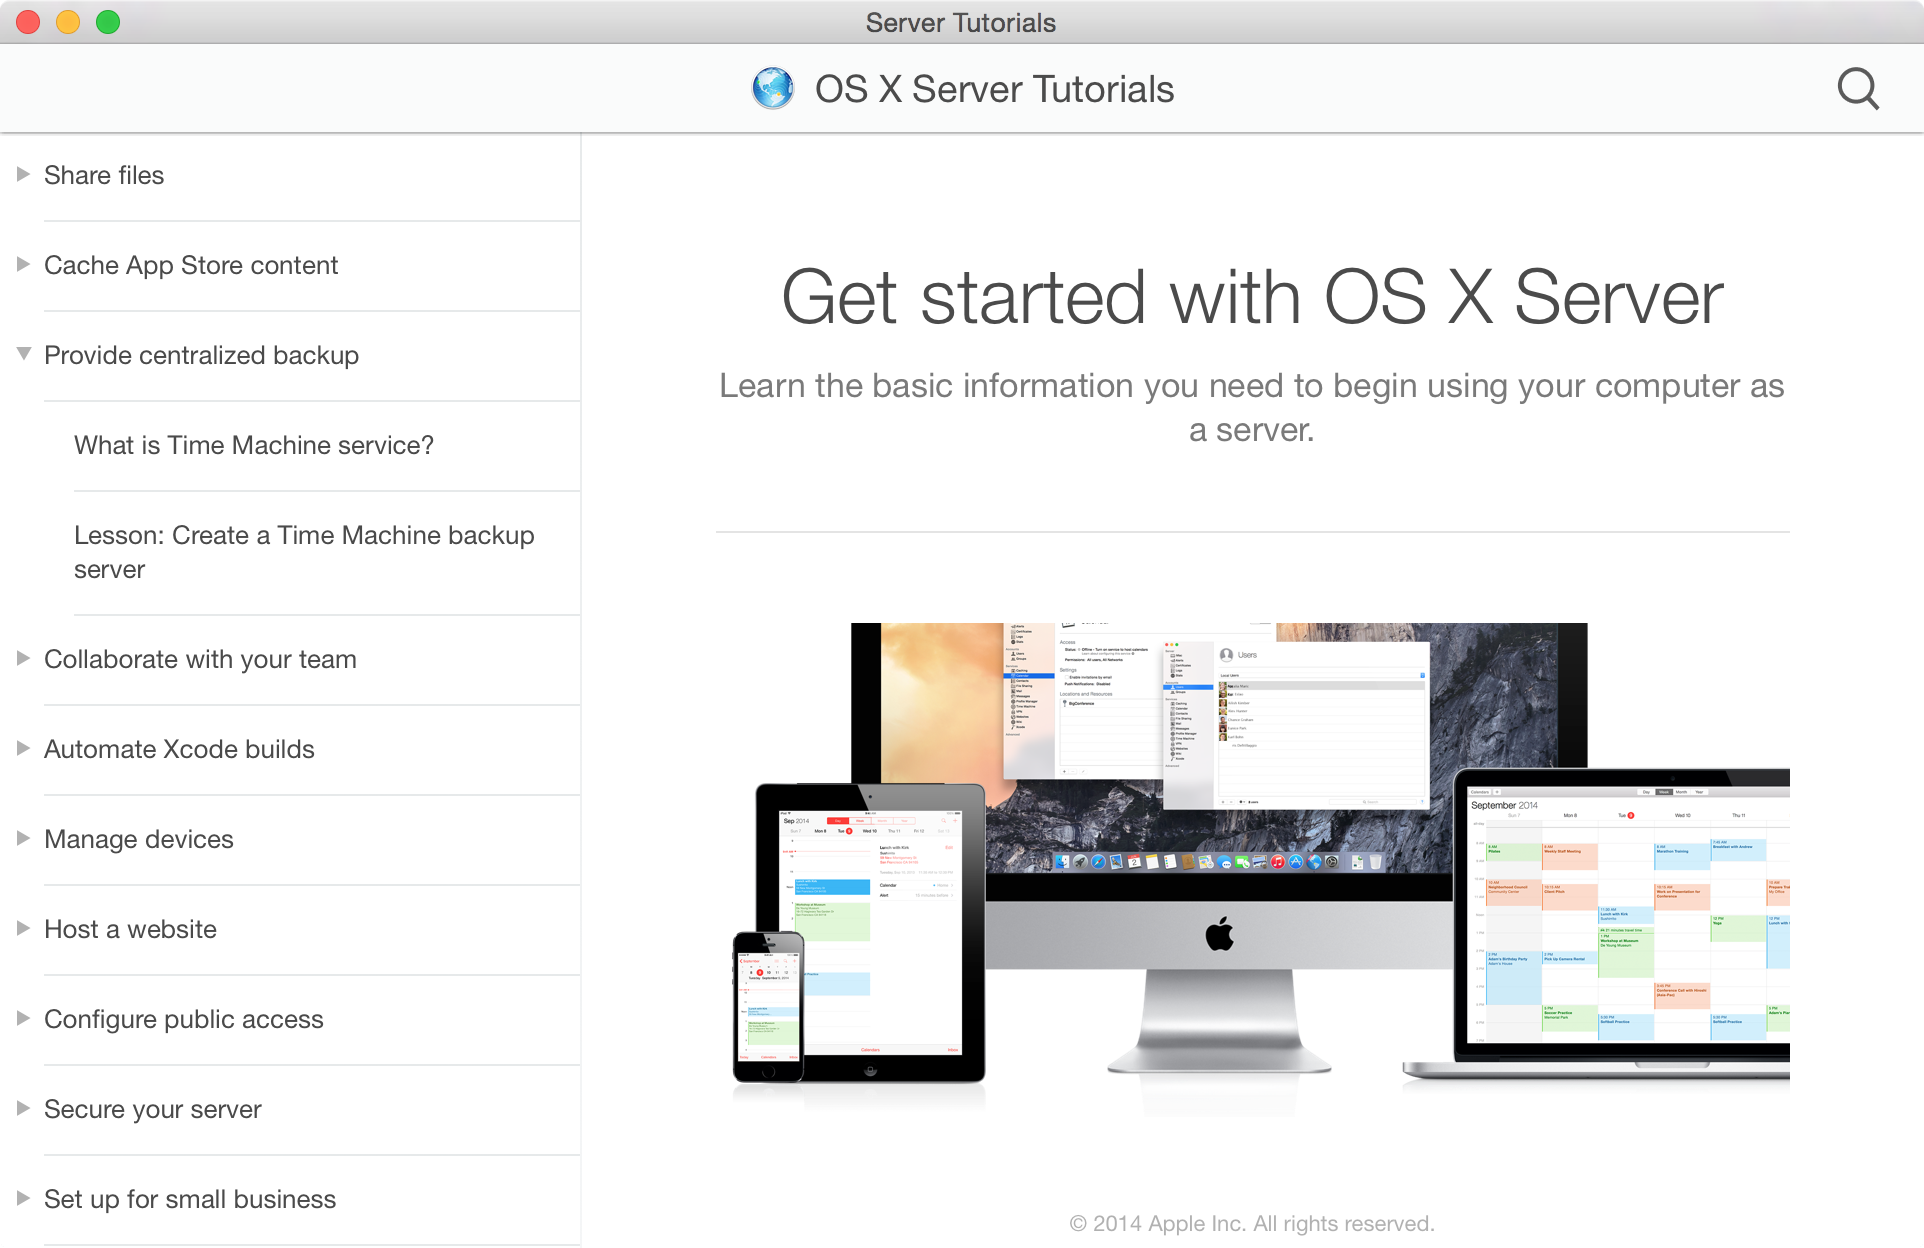 The OS X Server Tutorials are a good place to get started.